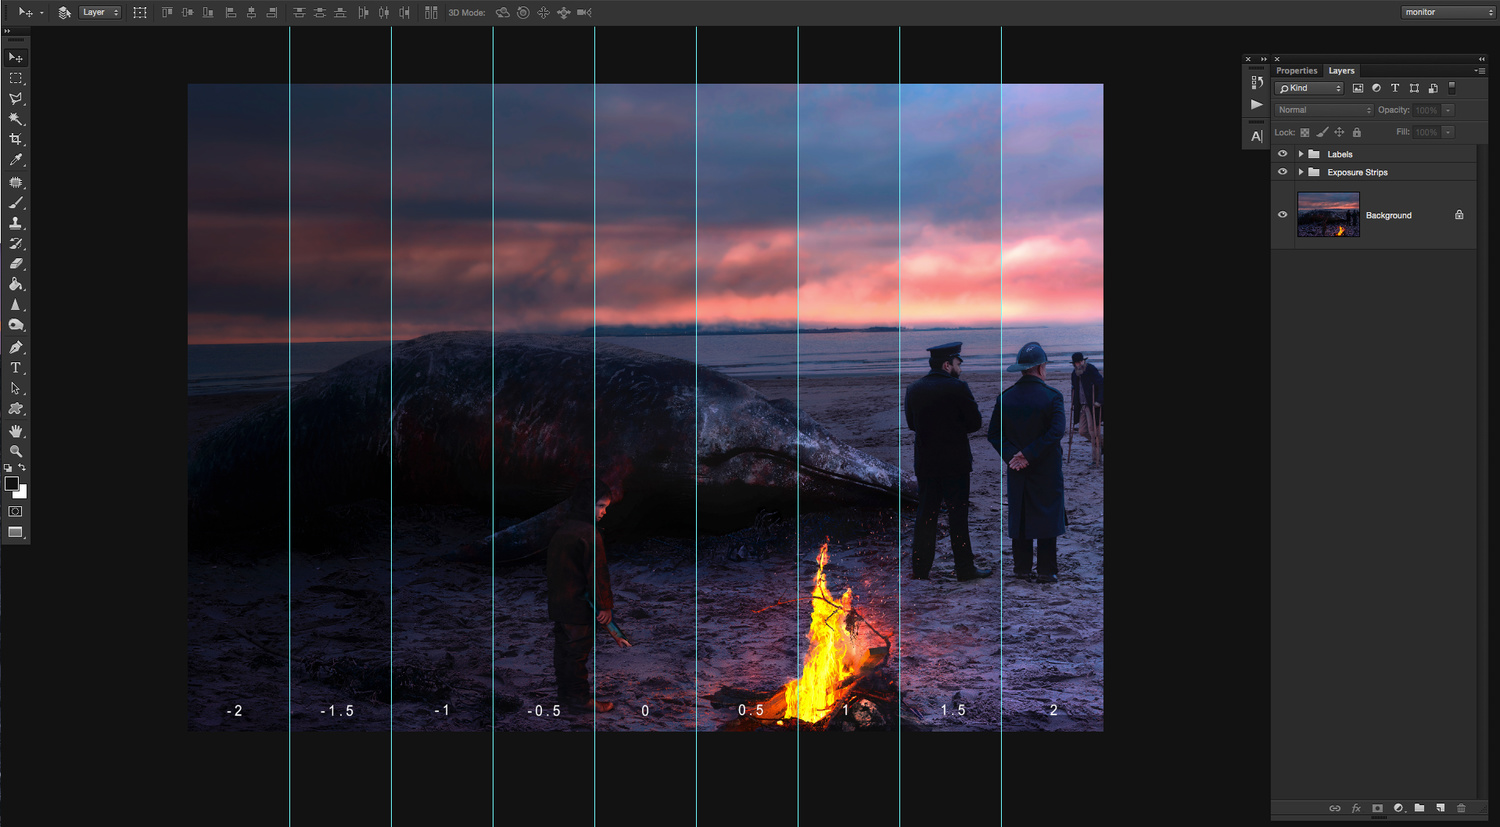 Use These Free Photoshop Templates and Never Make a Bad